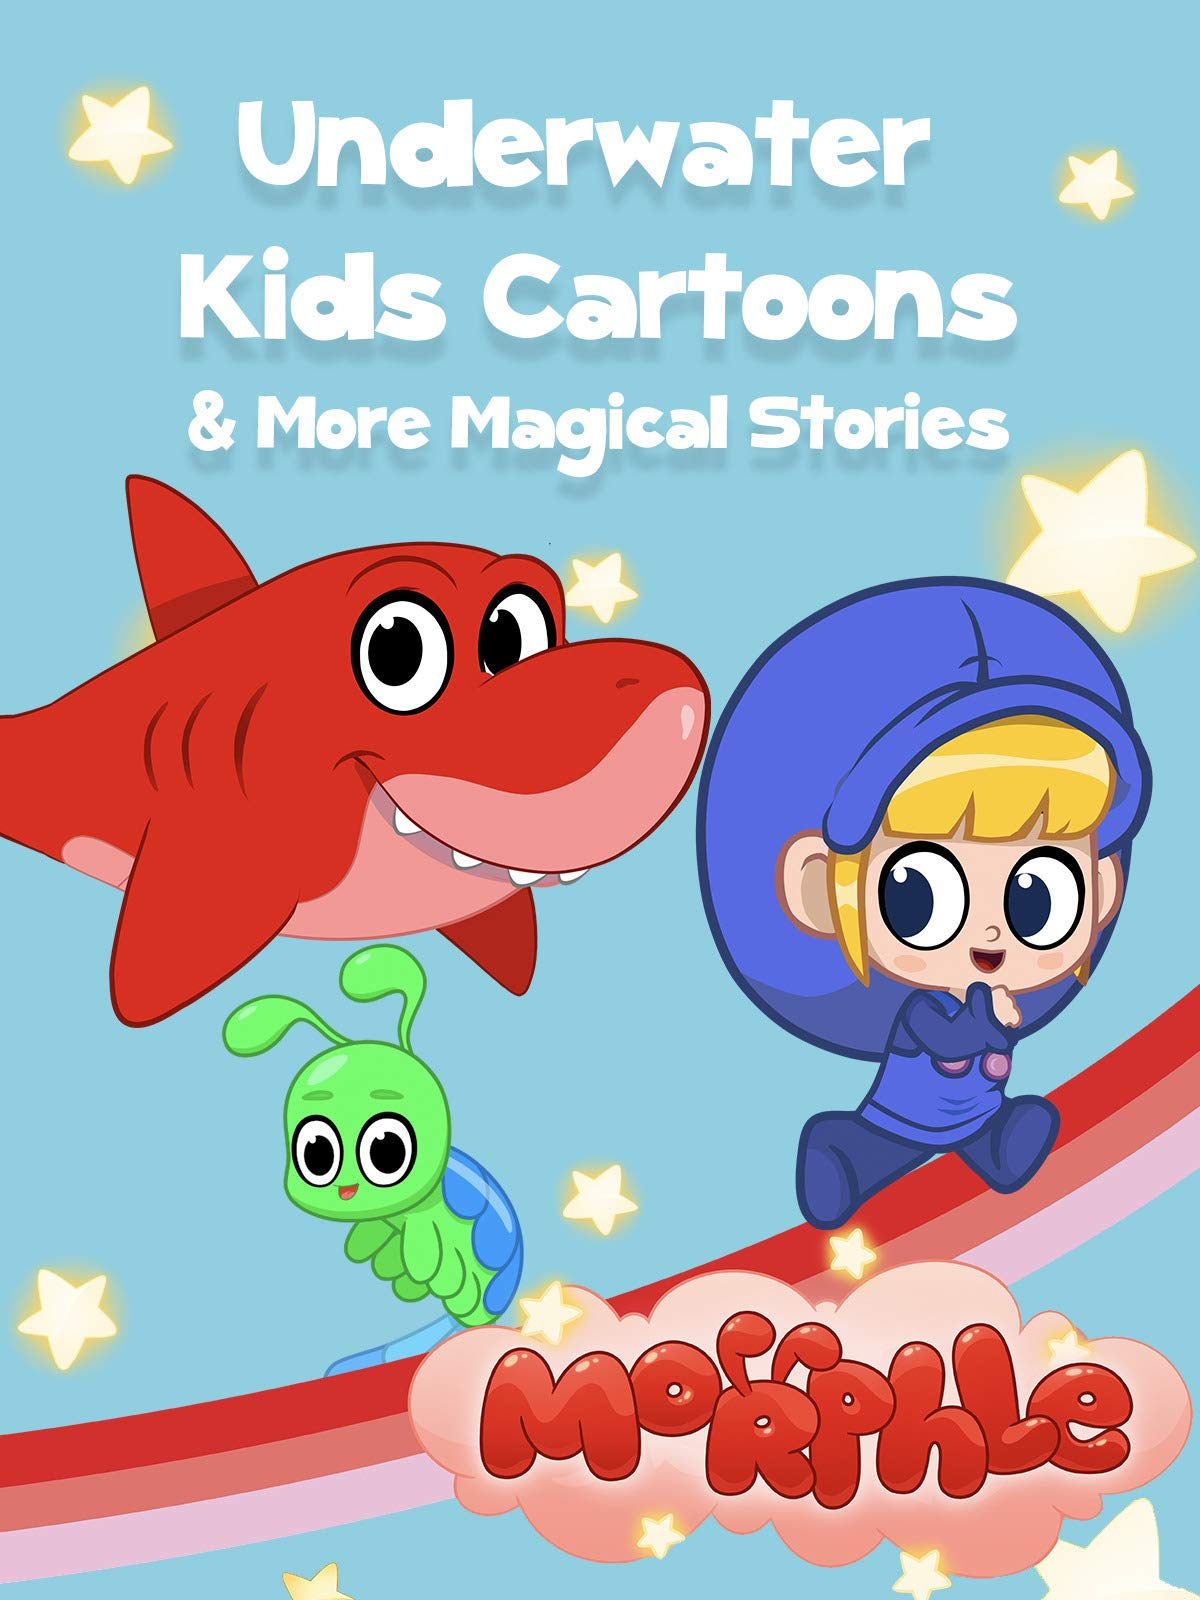 Morphle - Underwater Kids Cartoons and More Magical Stories on Amazon Prime Video UK